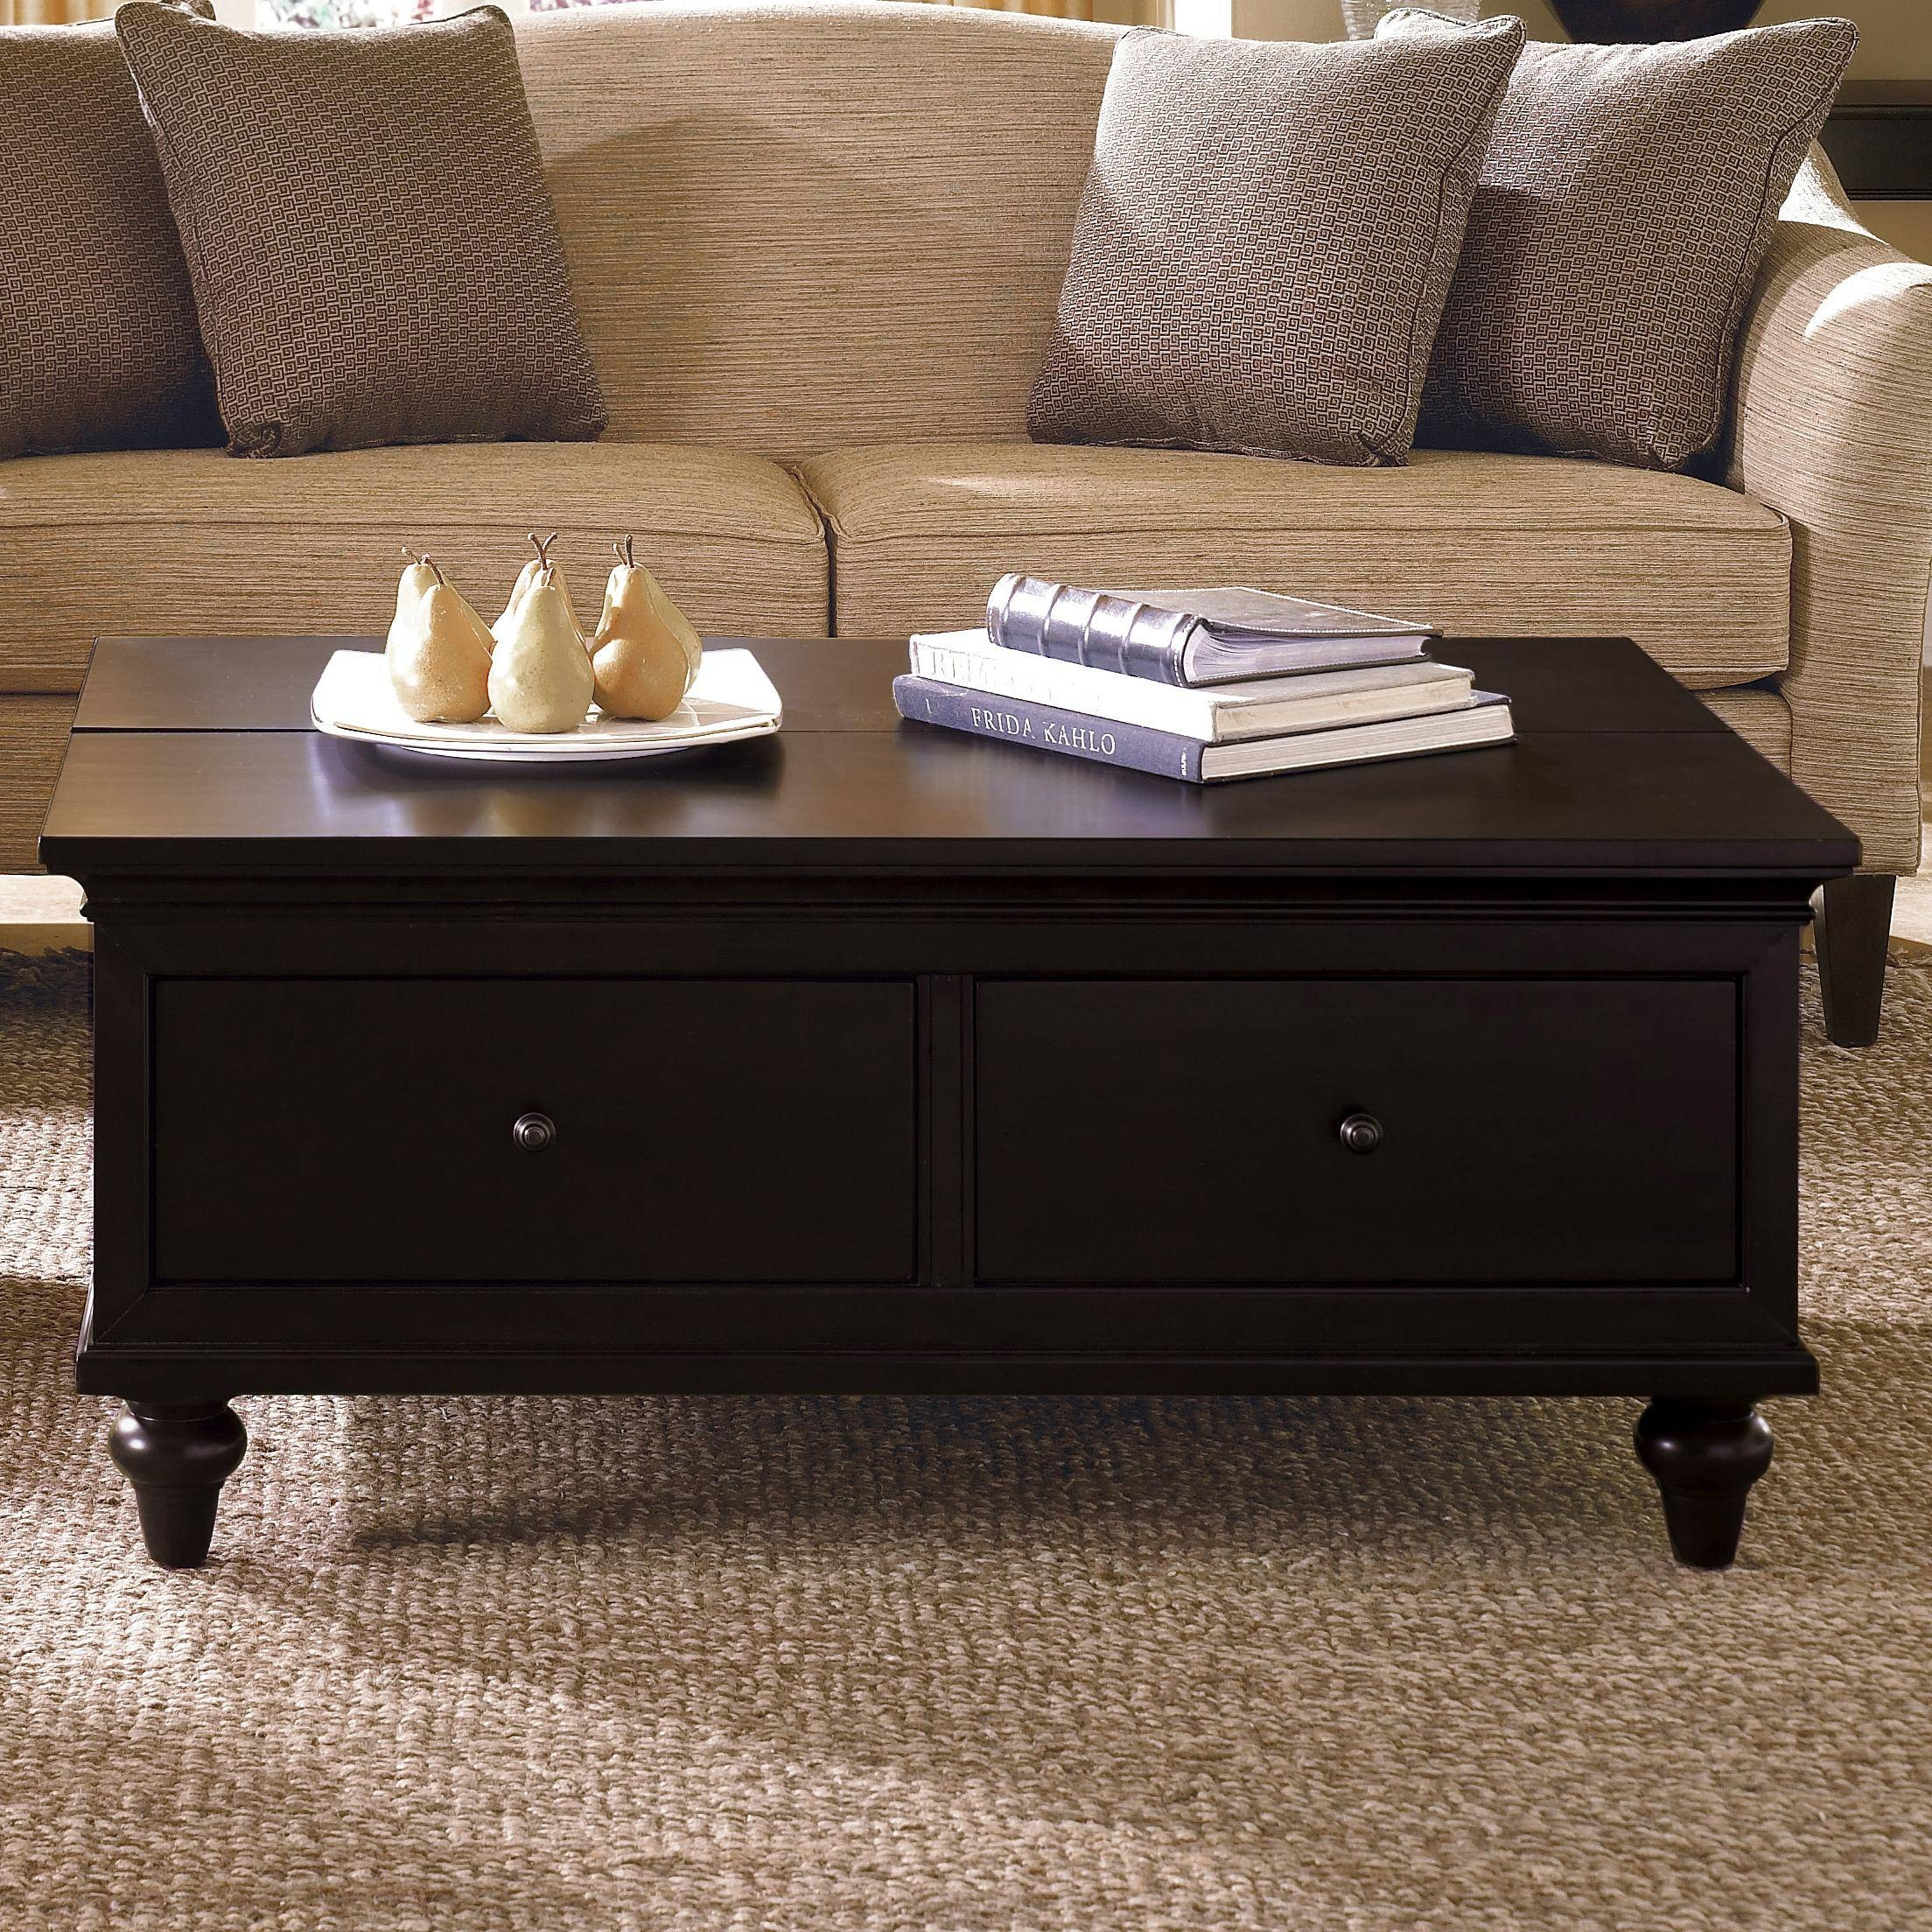 Great Coffee Table With Drawers Ideas – Small Coffee Table With within Round Coffee Tables With Drawers (Image 14 of 30)